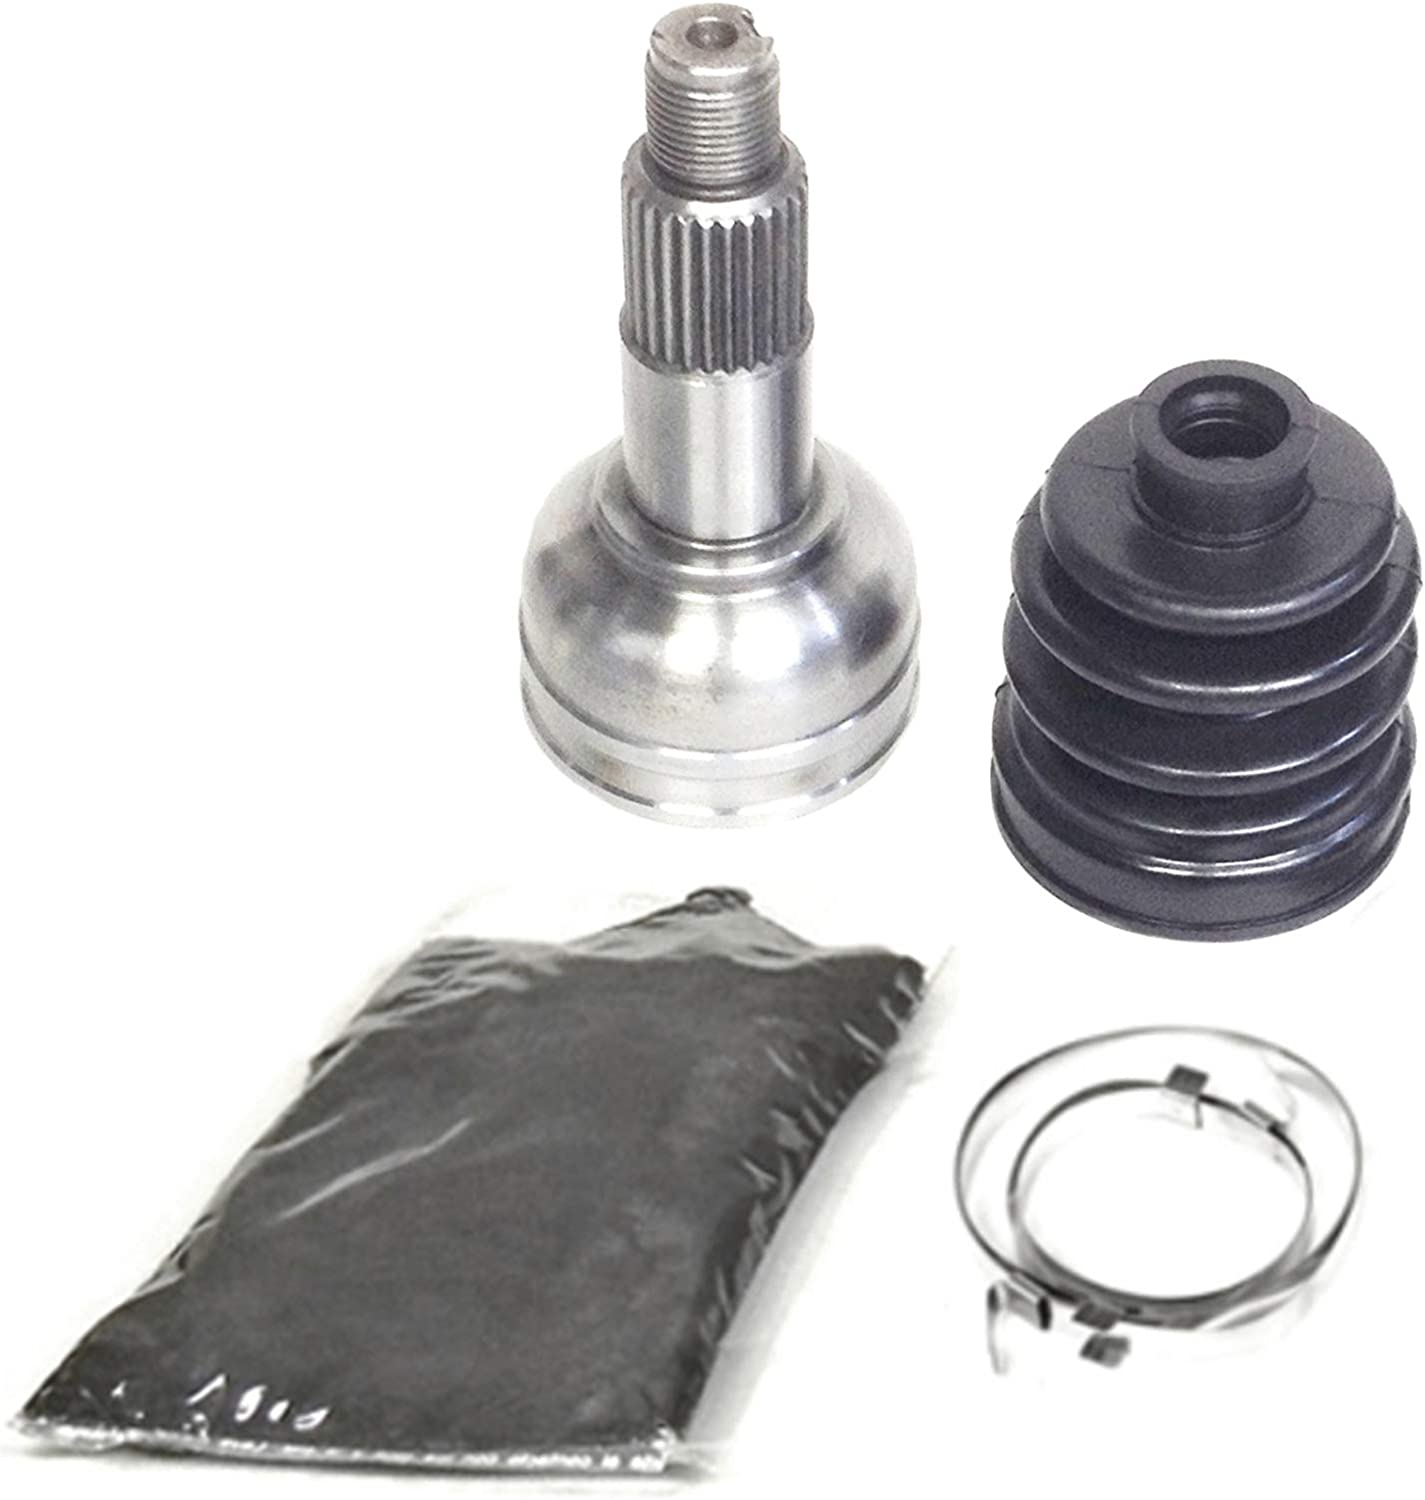 Rear Inner /& Outer CV Axle Boot Kit for Yamaha Grizzly 450 w// 4x4 2007-2014